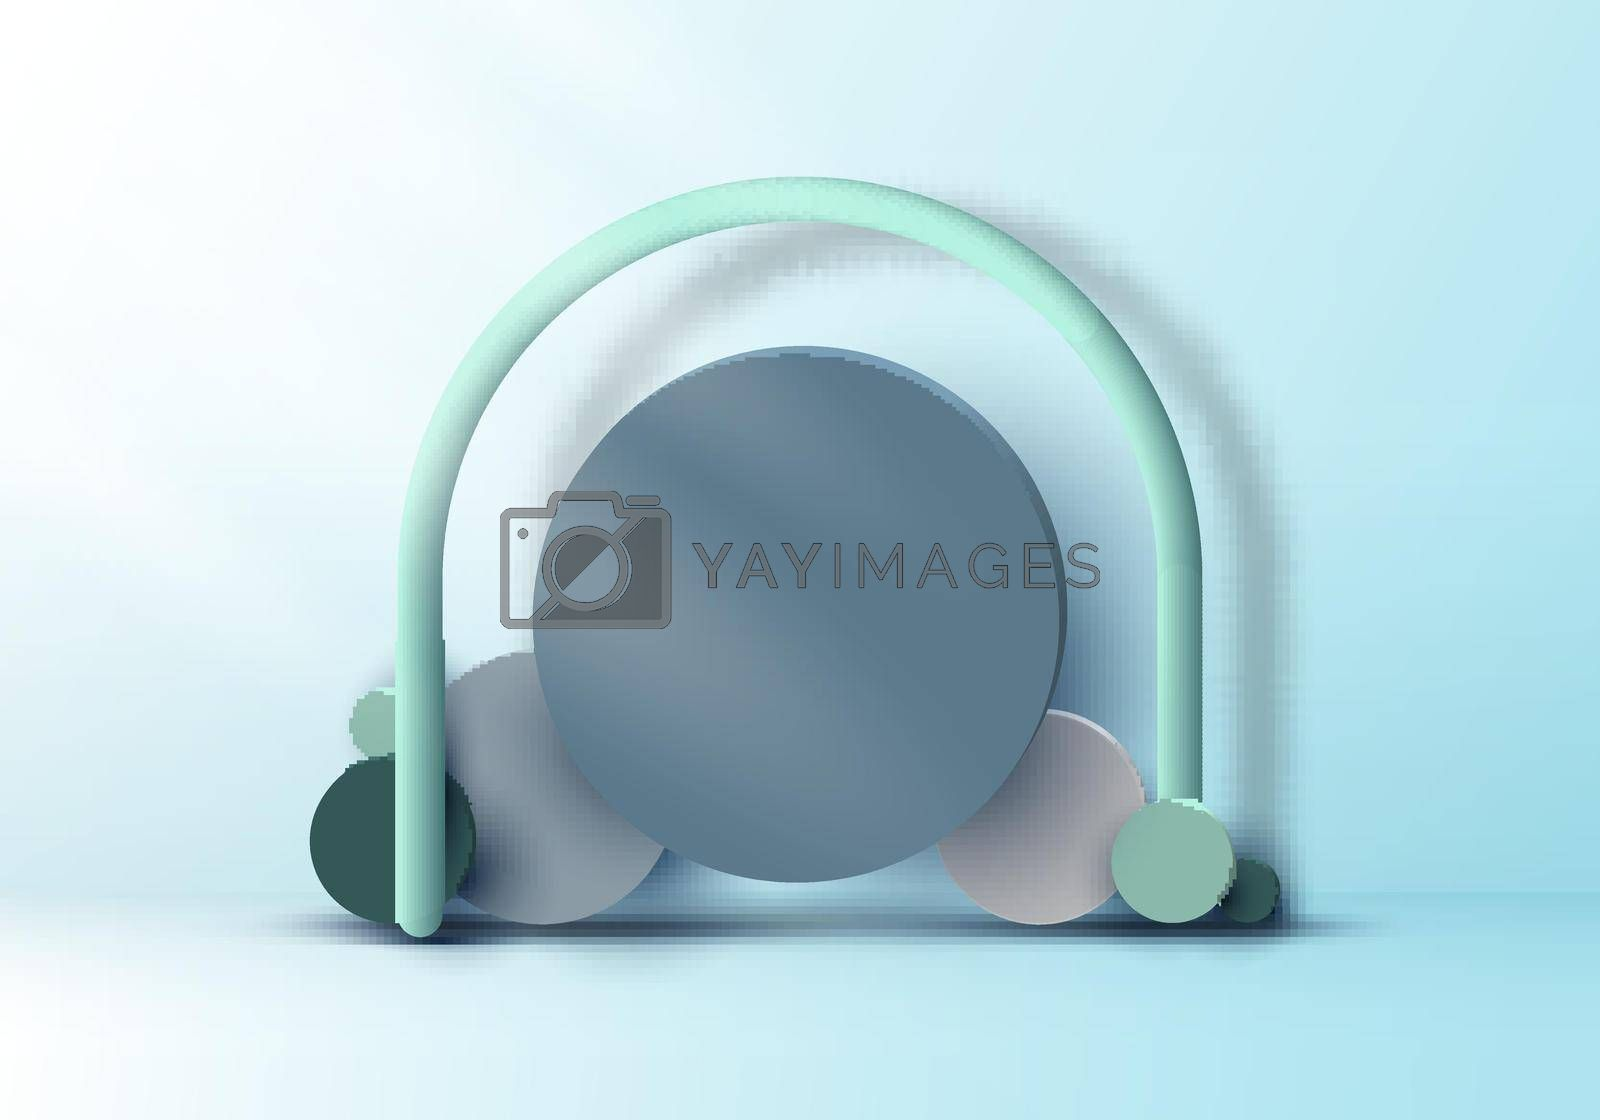 Royalty free image of 3D realistic set circles geometric group form backdrop mockup on soft blue background with lighting by phochi